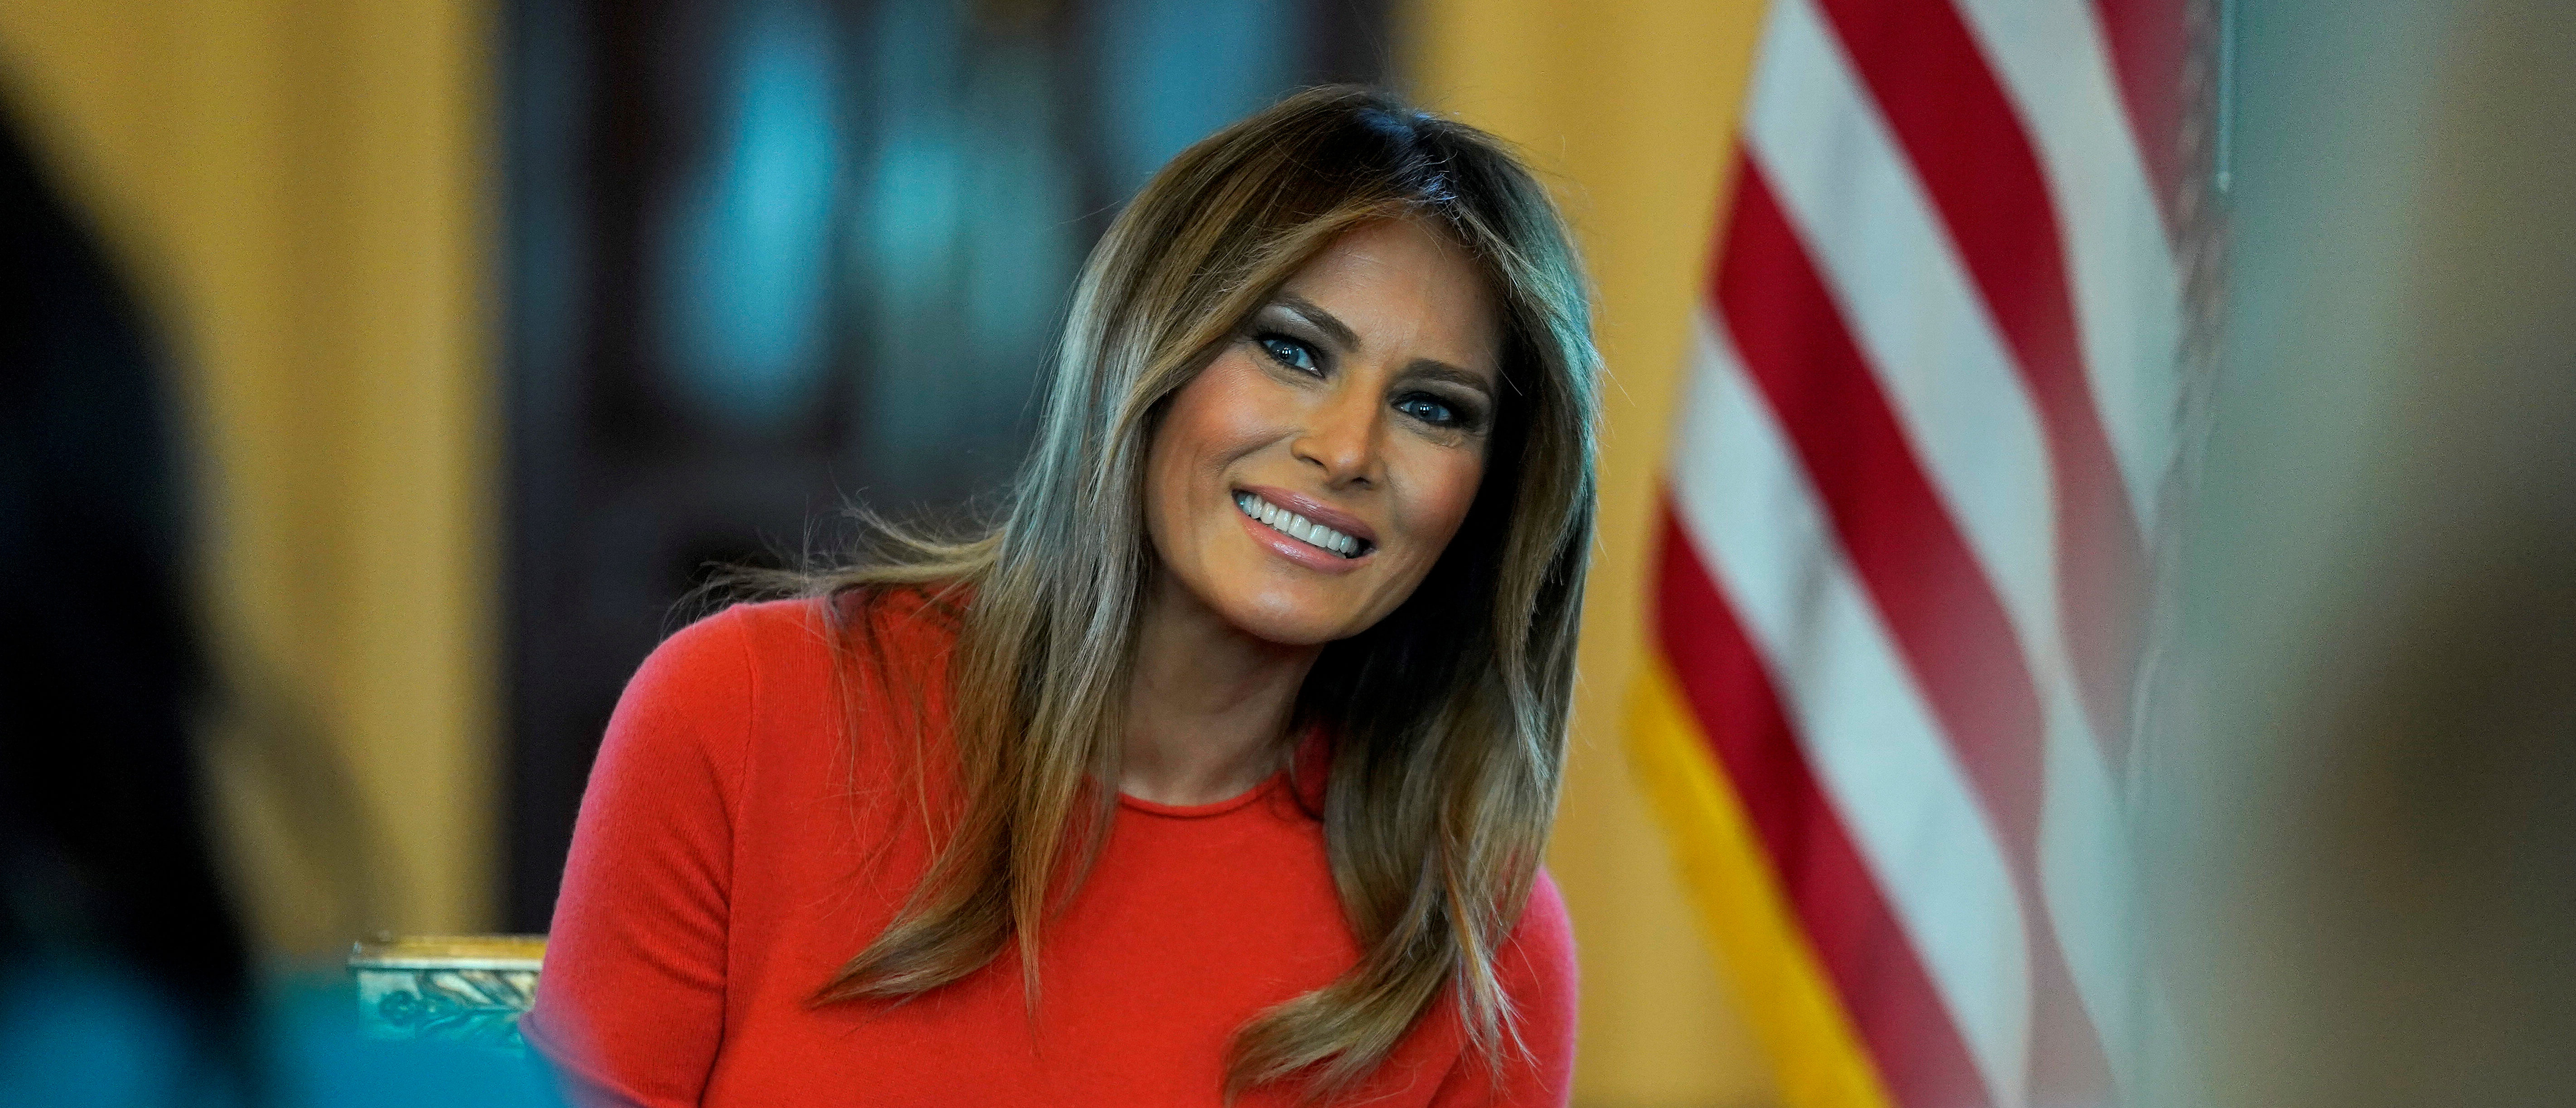 Melania Trump's Approval Rating Hits New High — Crushes All Expectations